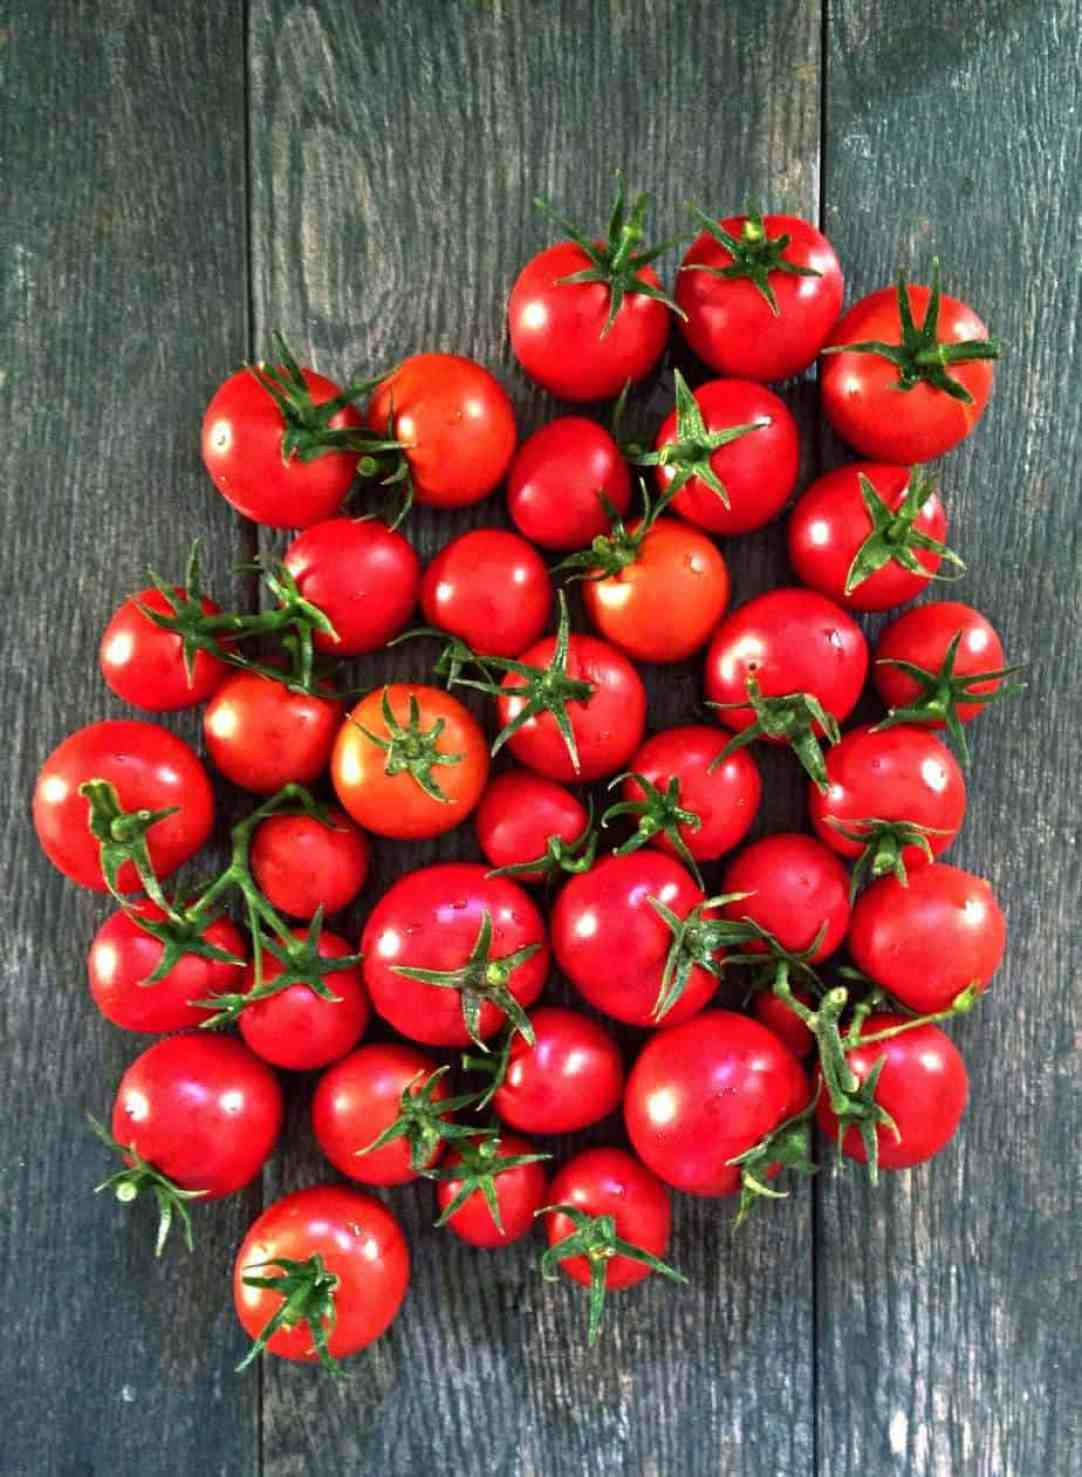 Growing My Own Tomatoes - A Fresh Journey